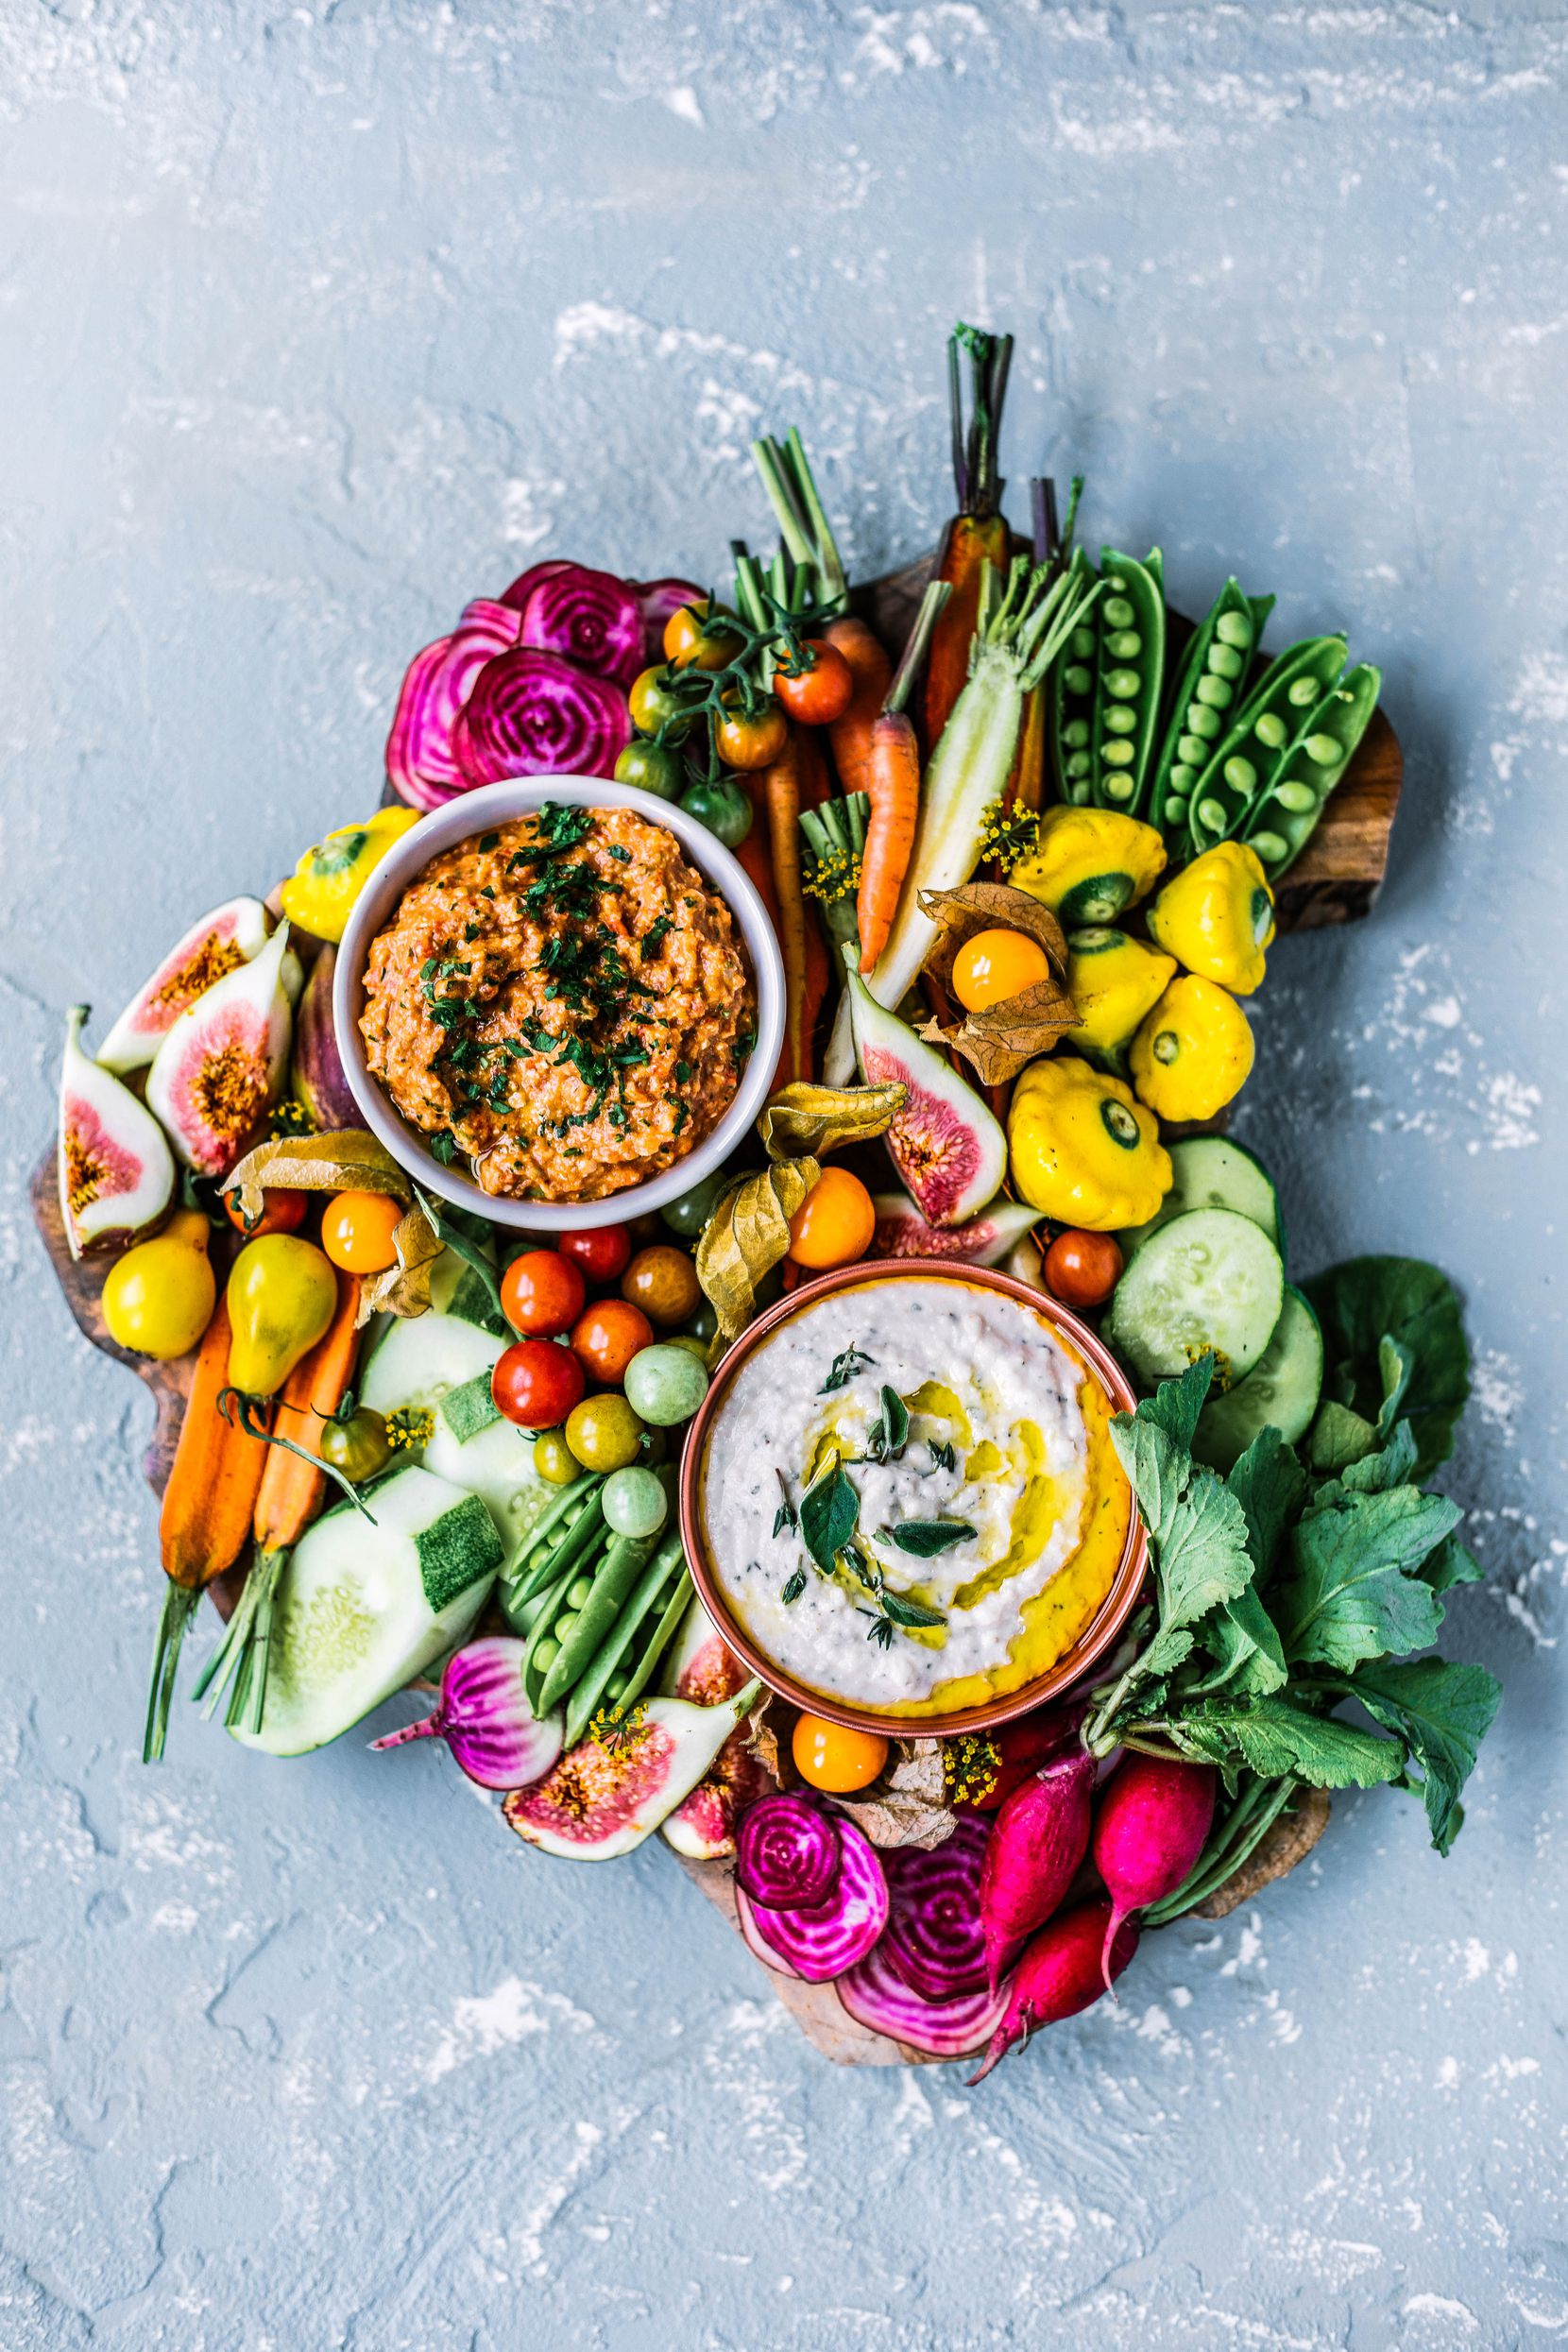 Serve Tuscan White Bean Dip with assorted vegetables for dipping.